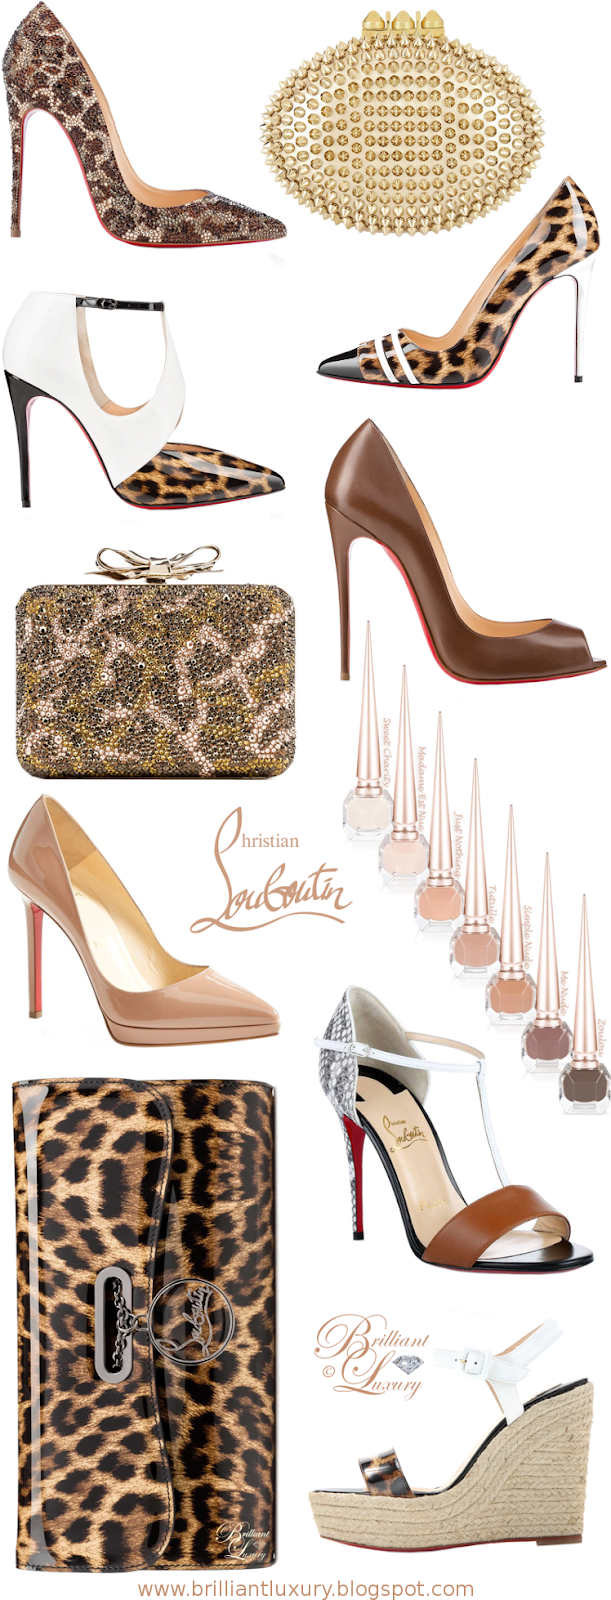 Brilliant Luxury ♦ Christian Louboutin Nude Collection